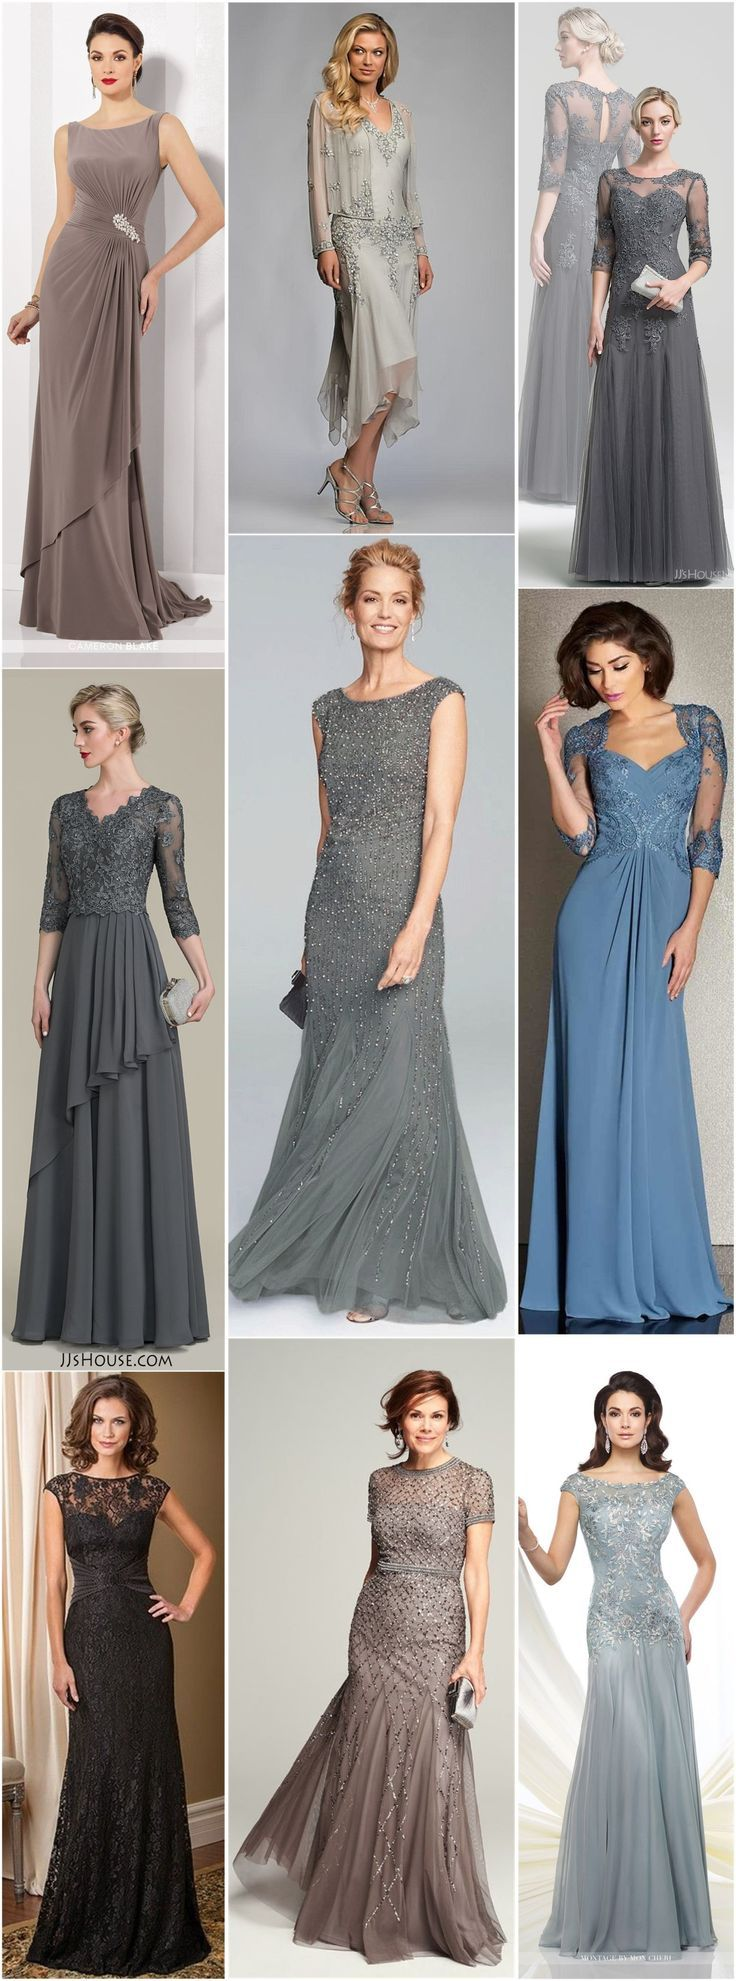 18 Long Length Mother of the Bride and Groom Dresses #groomdress